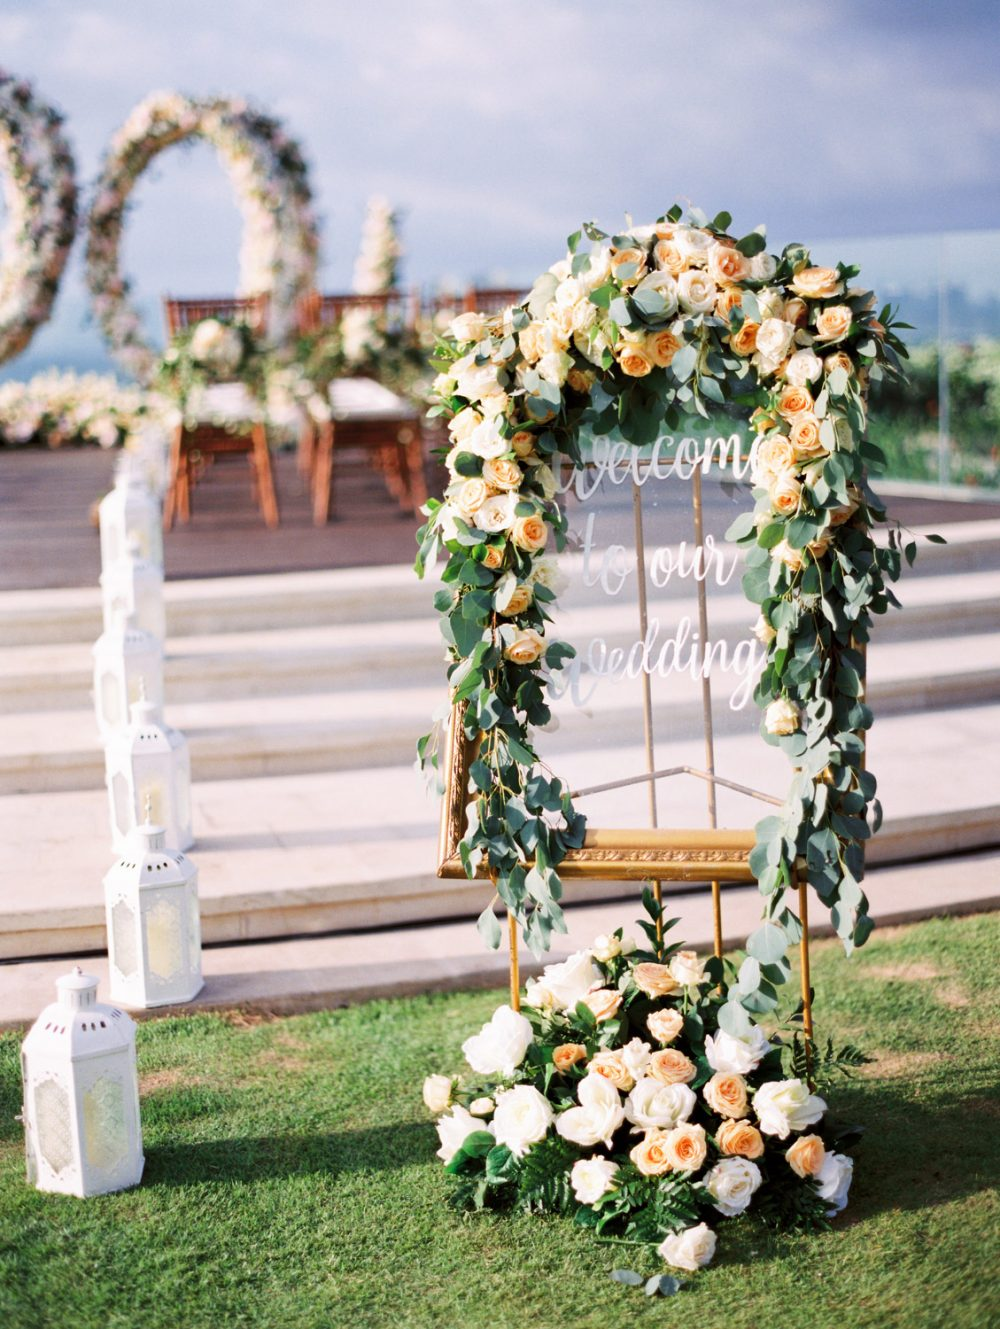 Bali wedding, bali wedding photography, bali wedding photographer, ayana resort and spa, Sydney wedding photography, sydney wedding photographer, wedding photogragher, sydney, Sydney wedding, Australian wedding, sydney fine art wedding photography, sydney fine art wedding photographer, fine art wedding, fine art wedding photography, fine art wedding photographer, Australian wedding photographer, Australian wedding photography, sydney fine art wedding photographer, sydney fine art wedding photography, themood lab, the mood lab photography